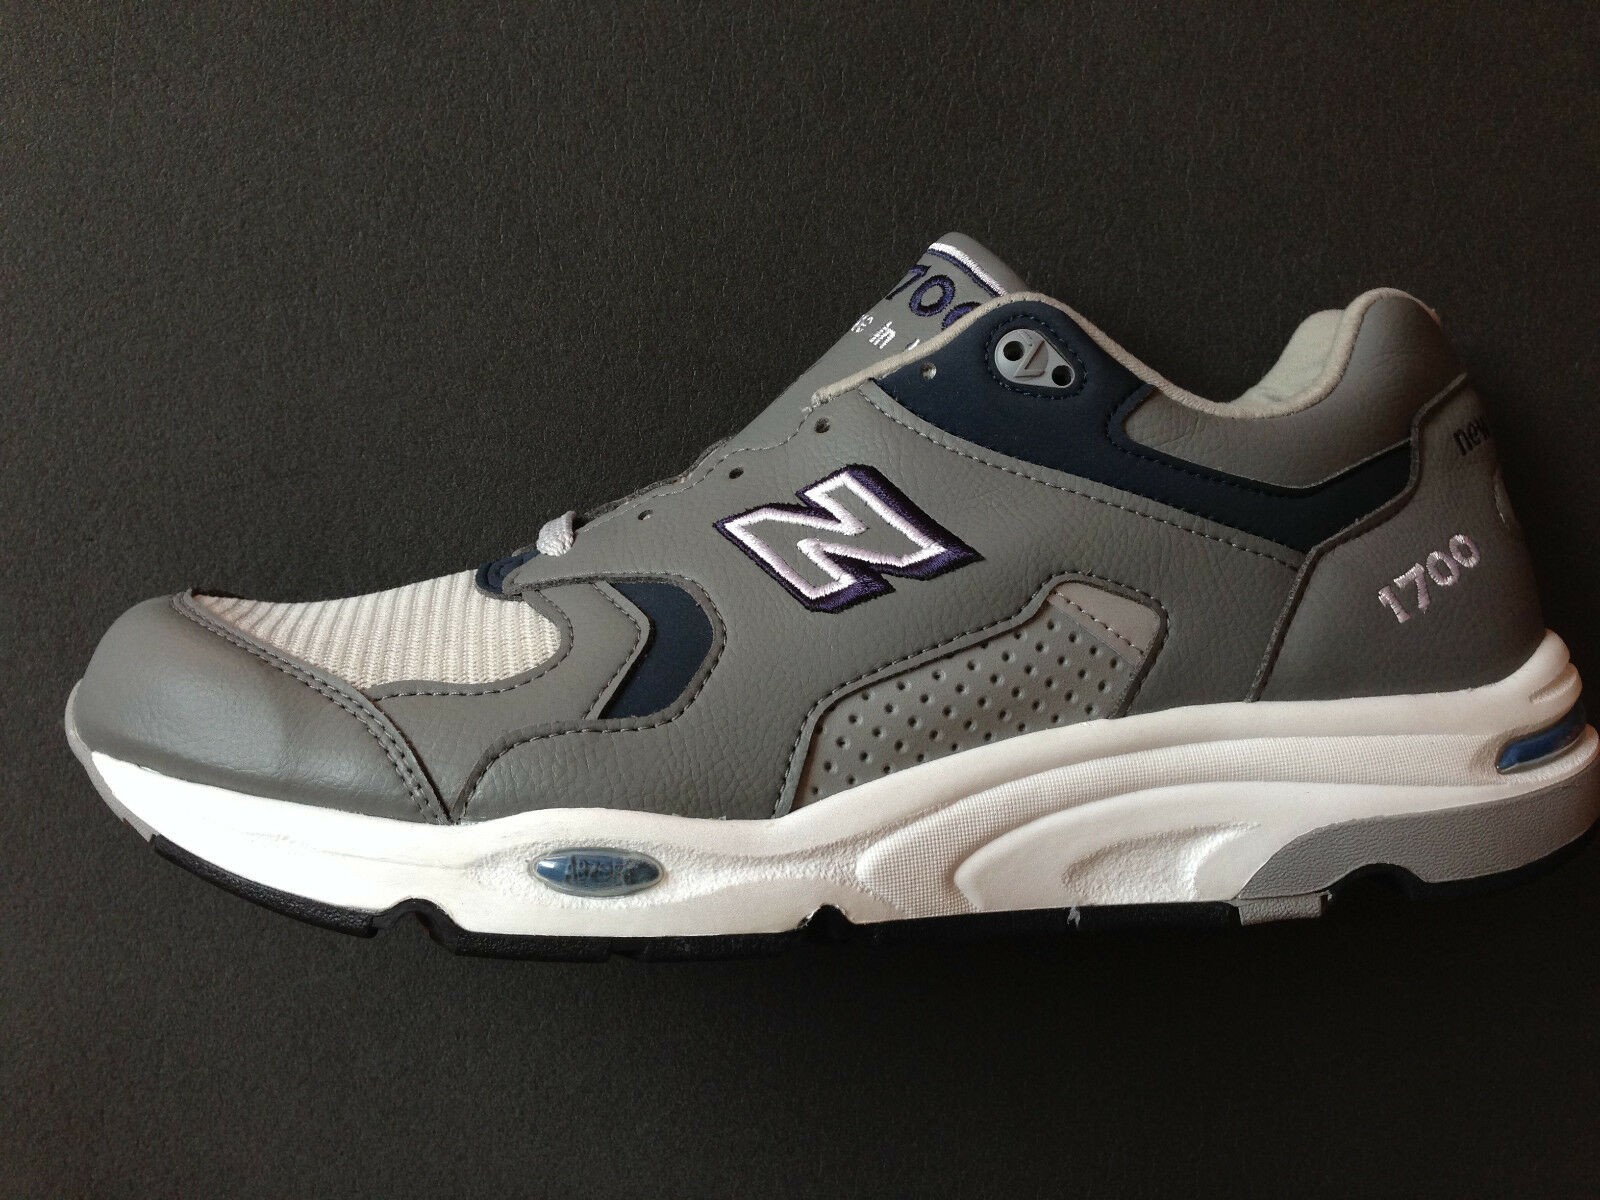 New balance m1700gra abzorb 1700 vintage colourway new US 12